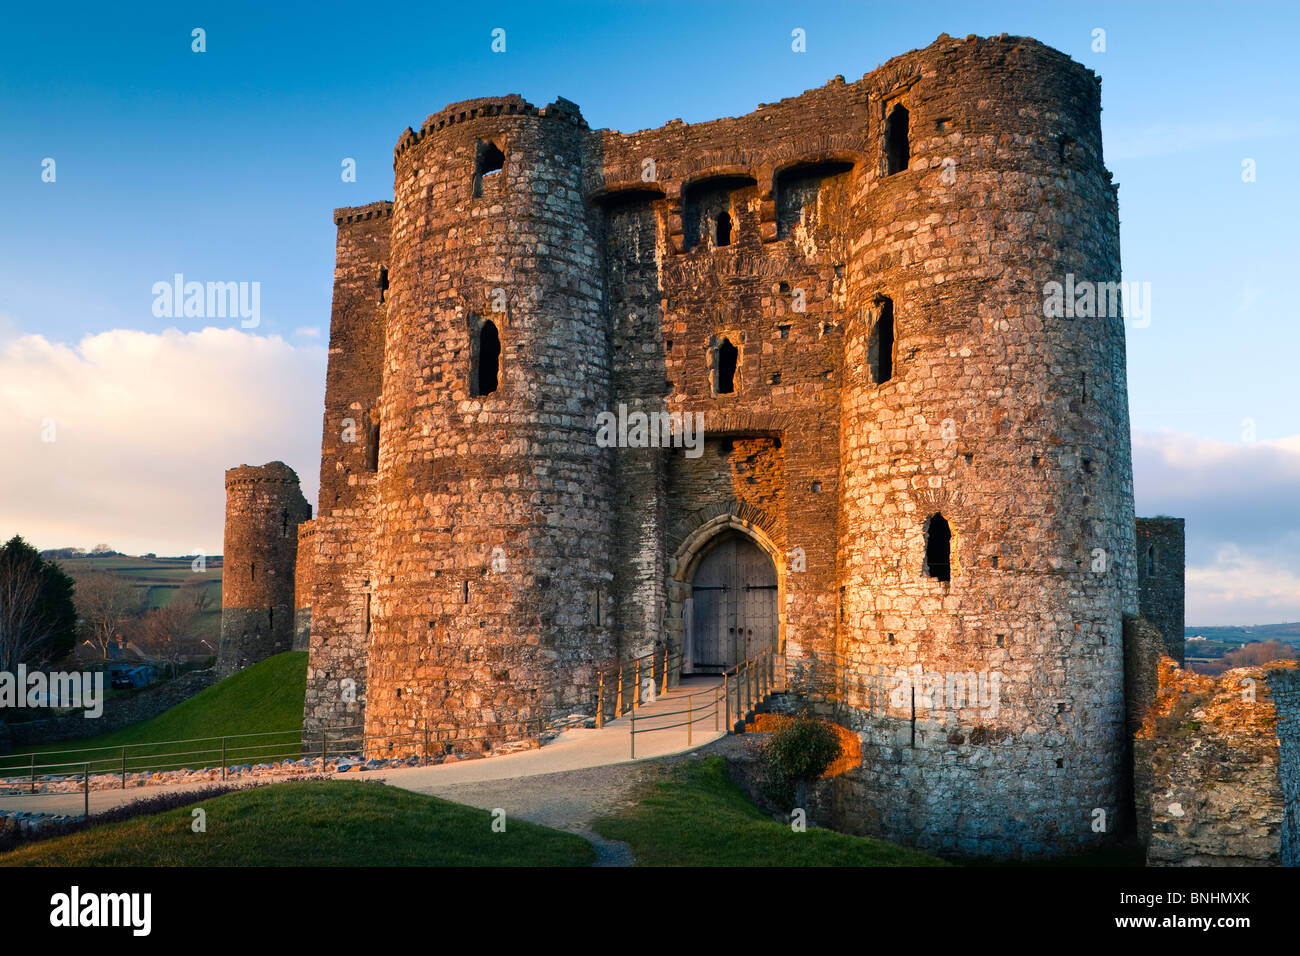 Château de Kidwelly Carmarthenshire Wales Photo Stock